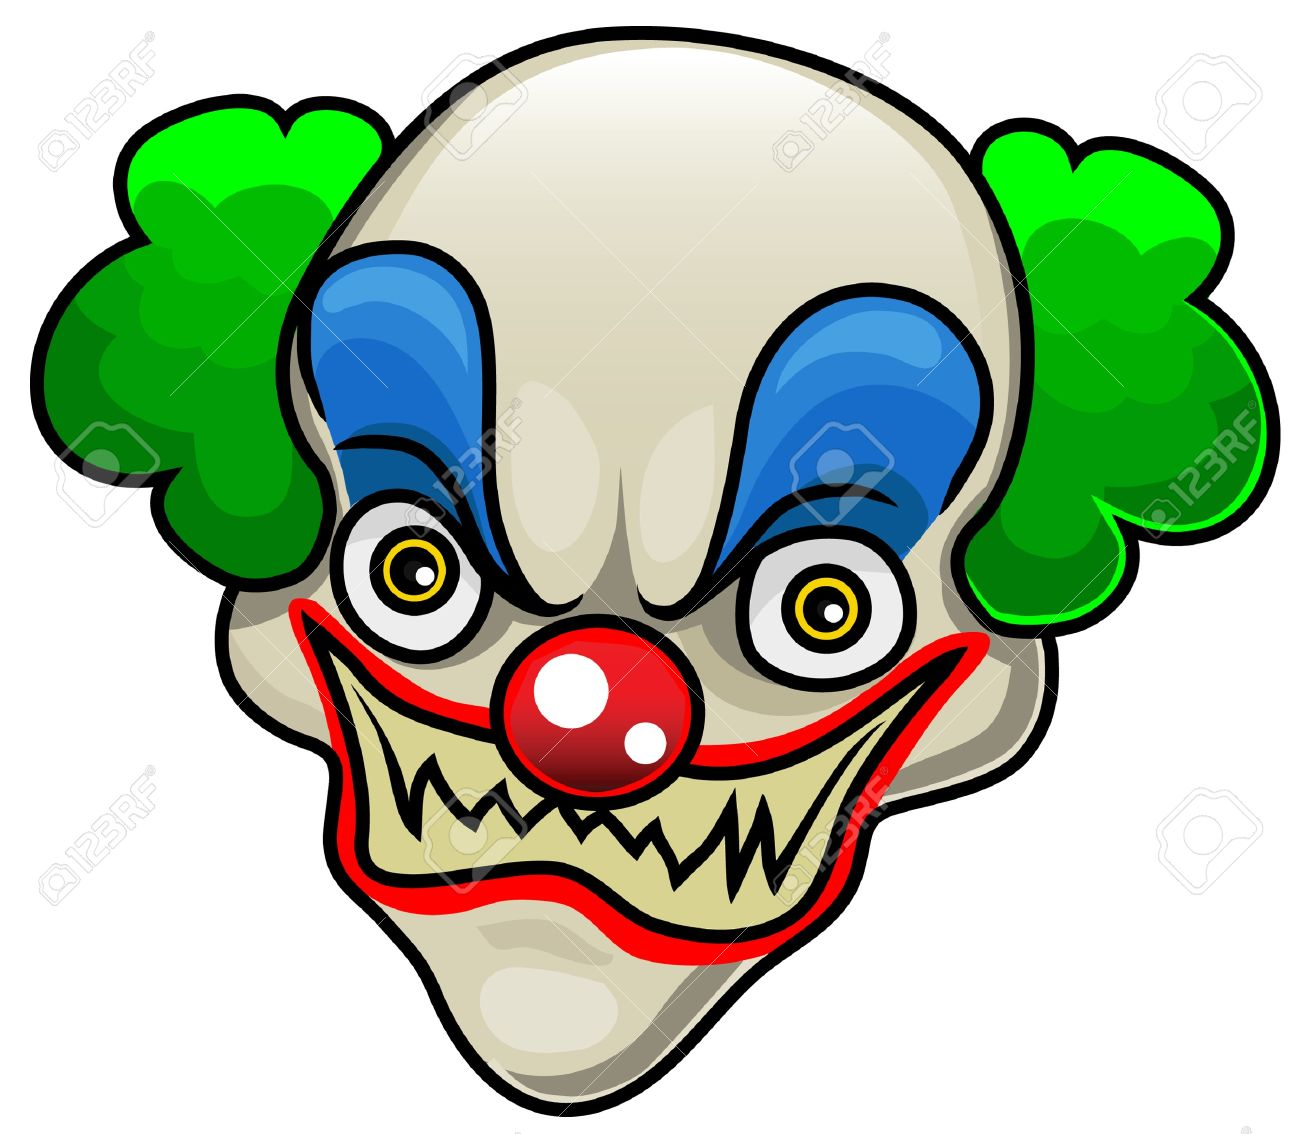 a very detailed cartoon halloween clown head or mask royalty free